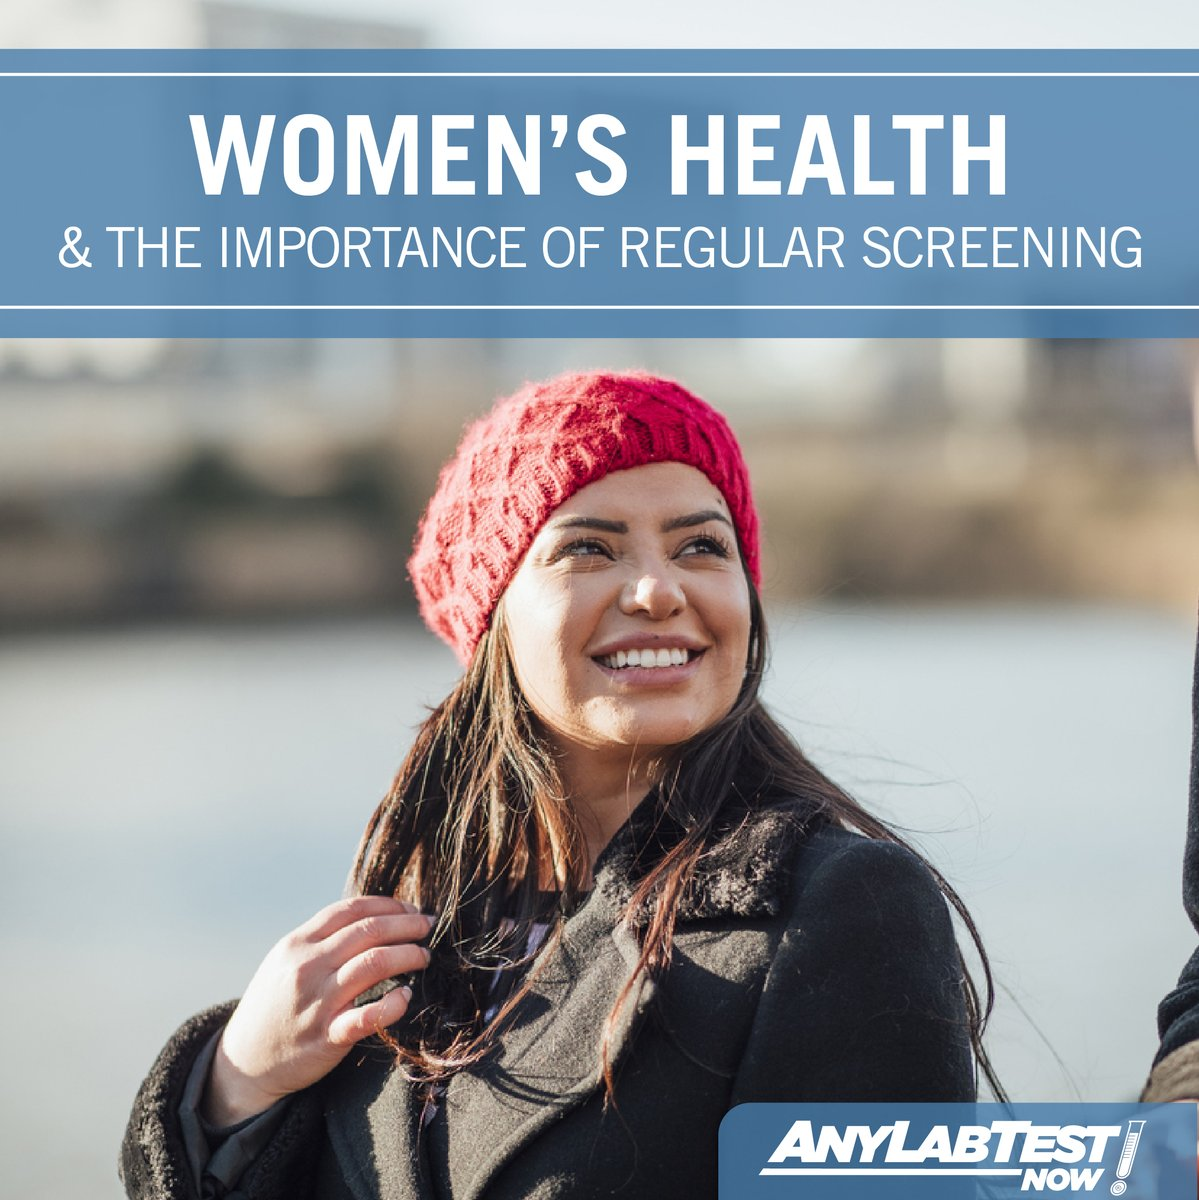 Your #health should be a top priority going into the #NewYear. Educate yourself on the importance of regular screening during Cervical Health Awareness Month. Visit our website to see the tests we offer! #cervicalcancer #ALTN